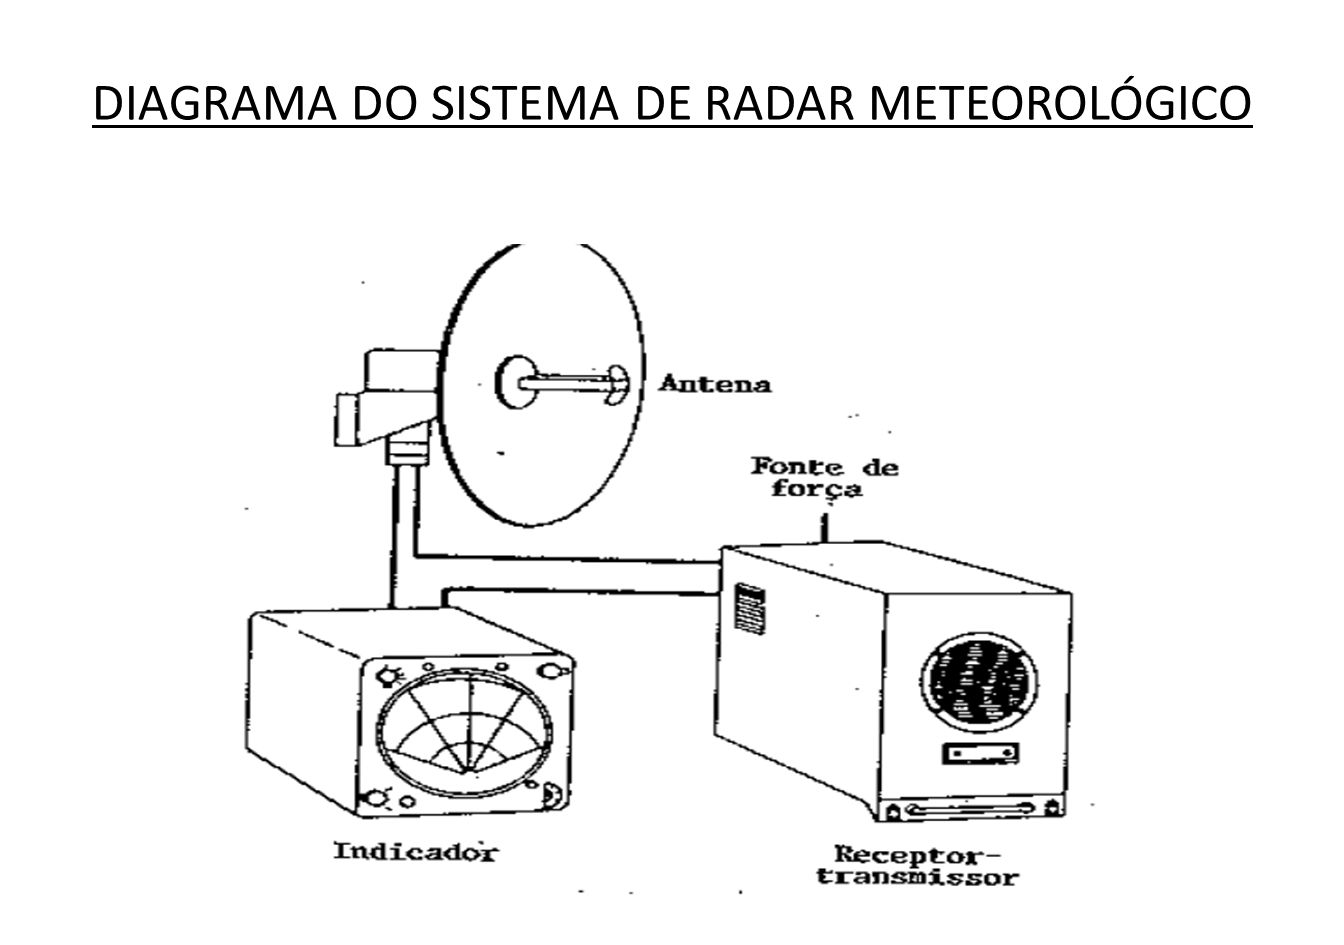 DIAGRAMA DO SISTEMA DE RADAR METEOROLÓGICO